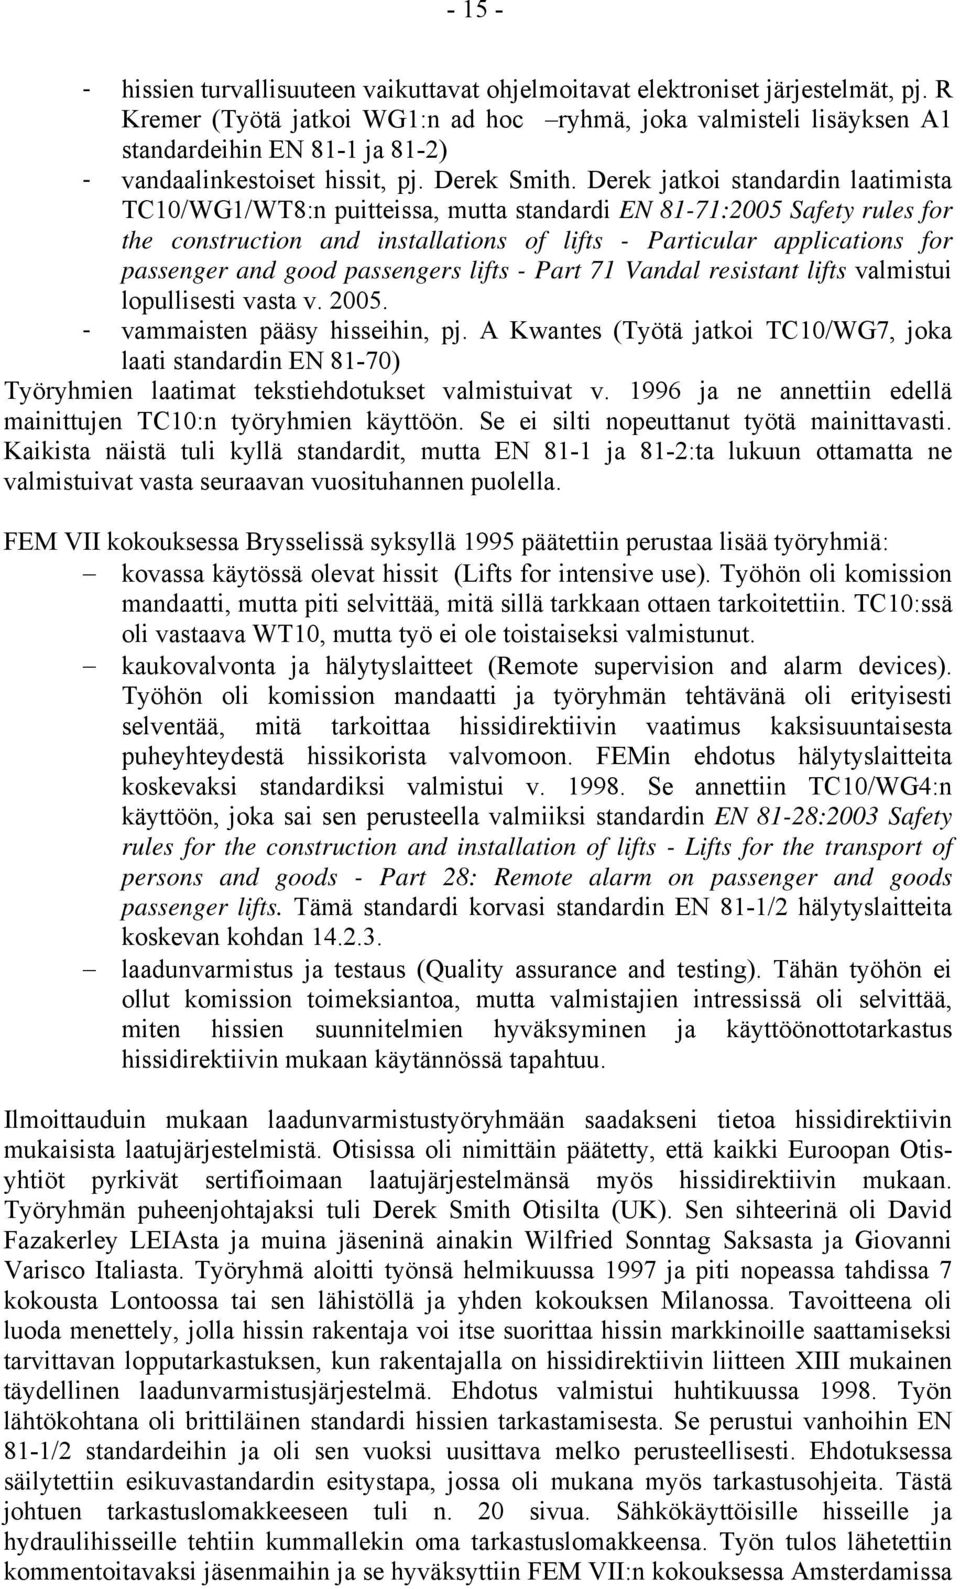 Derek jatkoi standardin laatimista TC10/WG1/WT8:n puitteissa, mutta standardi EN 81-71:2005 Safety rules for the construction and installations of lifts - Particular applications for passenger and